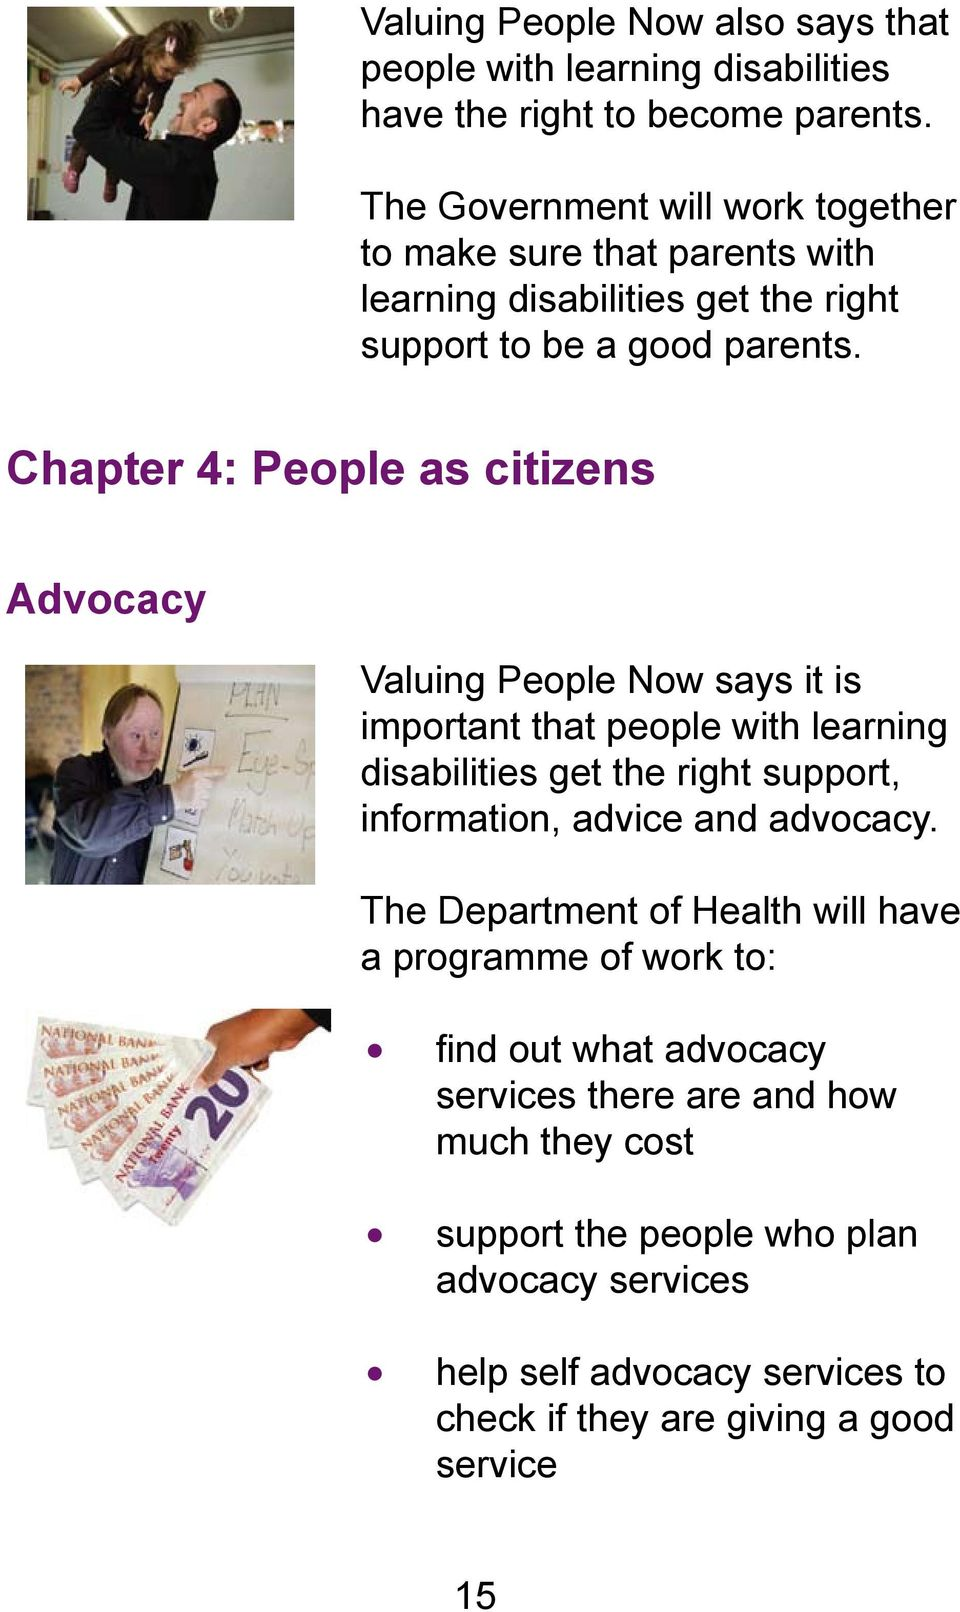 Chapter 4: People as citizens Advocacy Valuing People Now says it is important that people with learning disabilities get the right support, information, advice